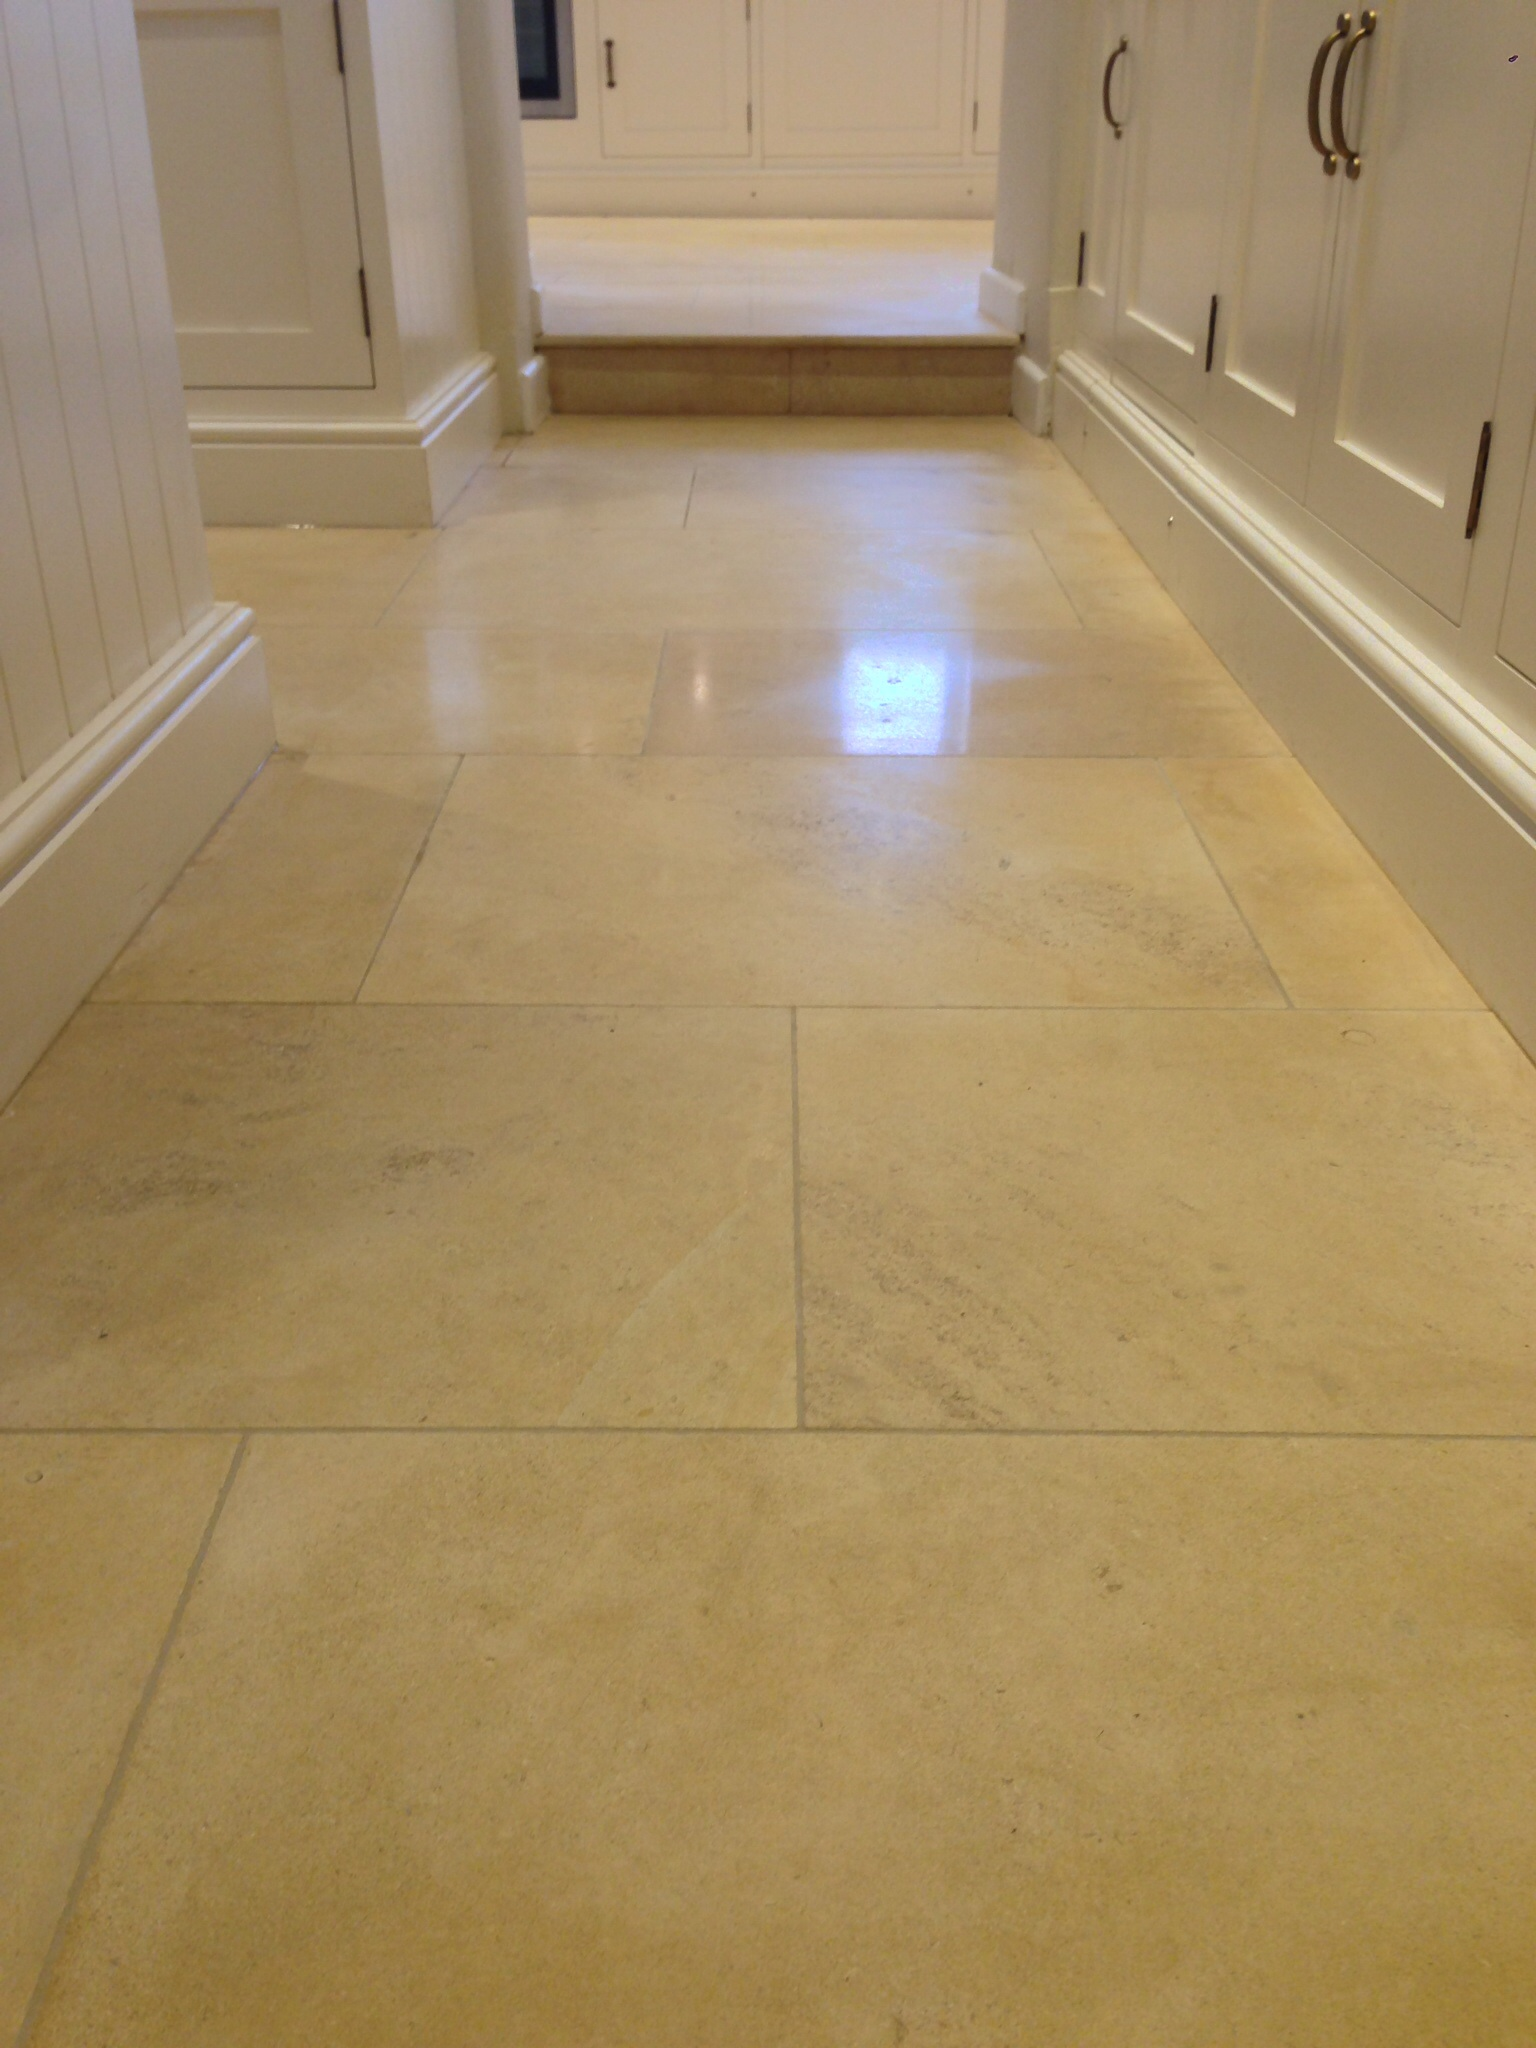 Marble Floor Types And Prices In Lahore: Limestone Floor Restoration